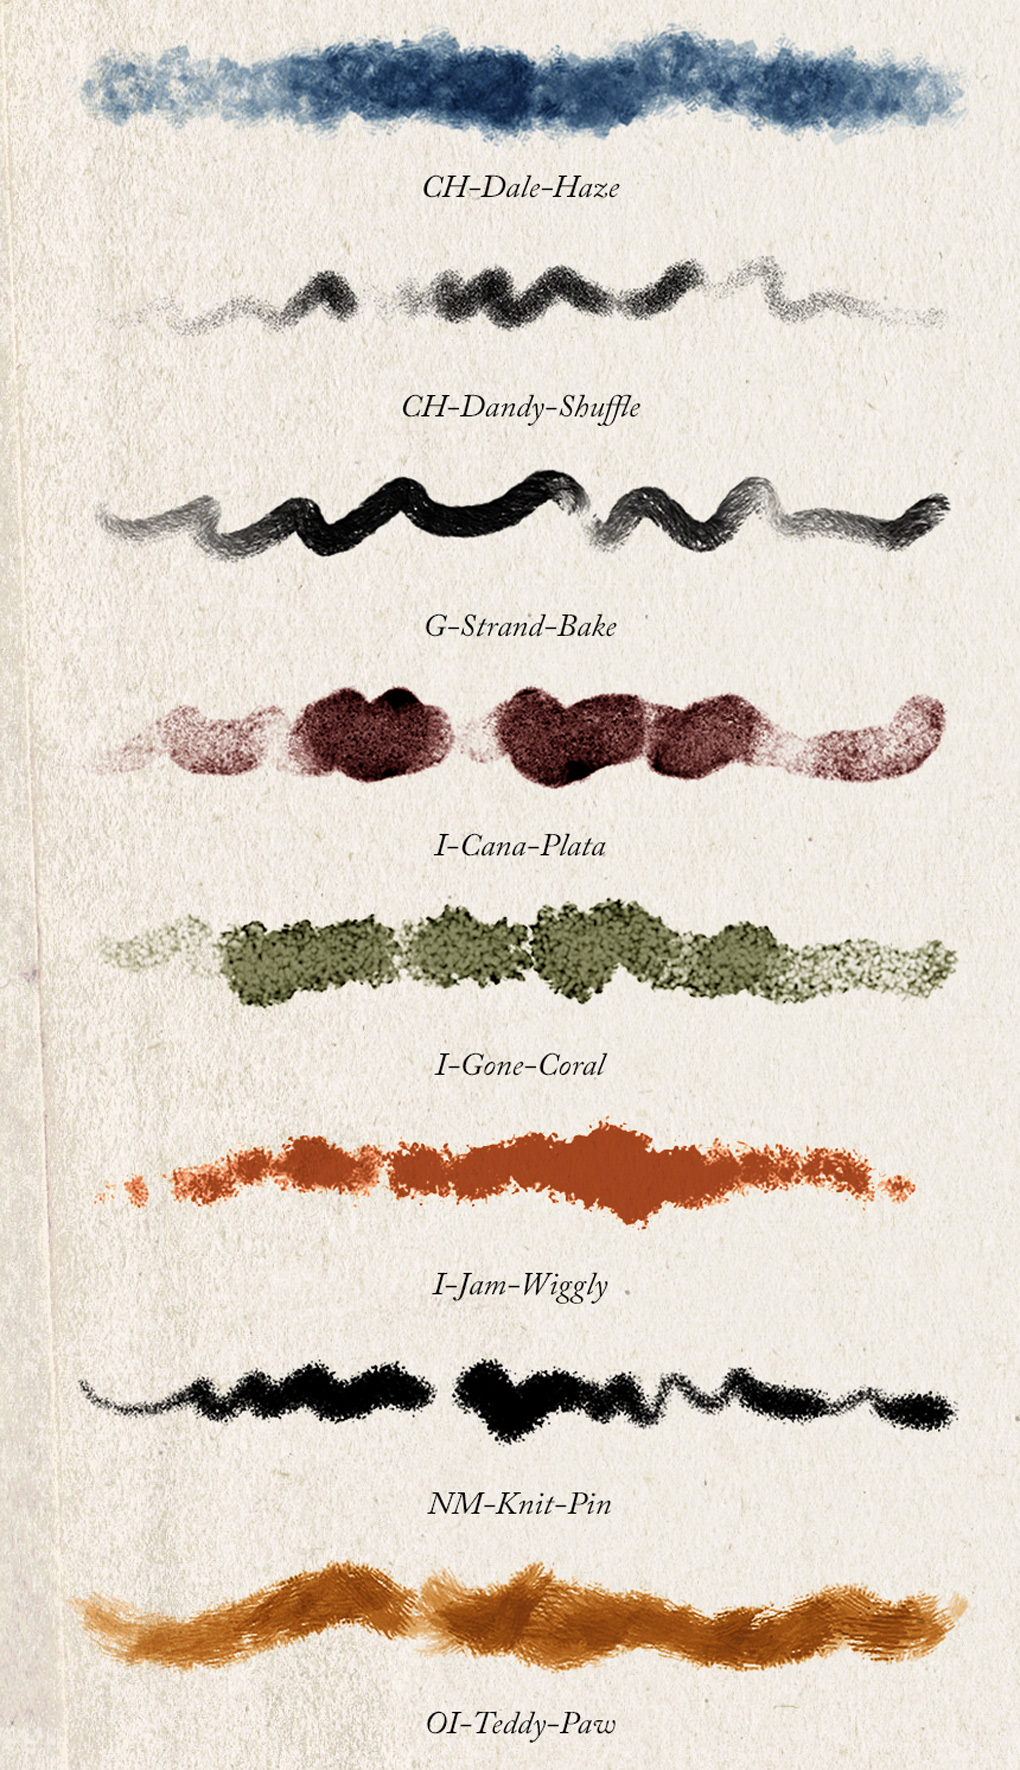 Some of the new Photoshop brushes published in May 2016